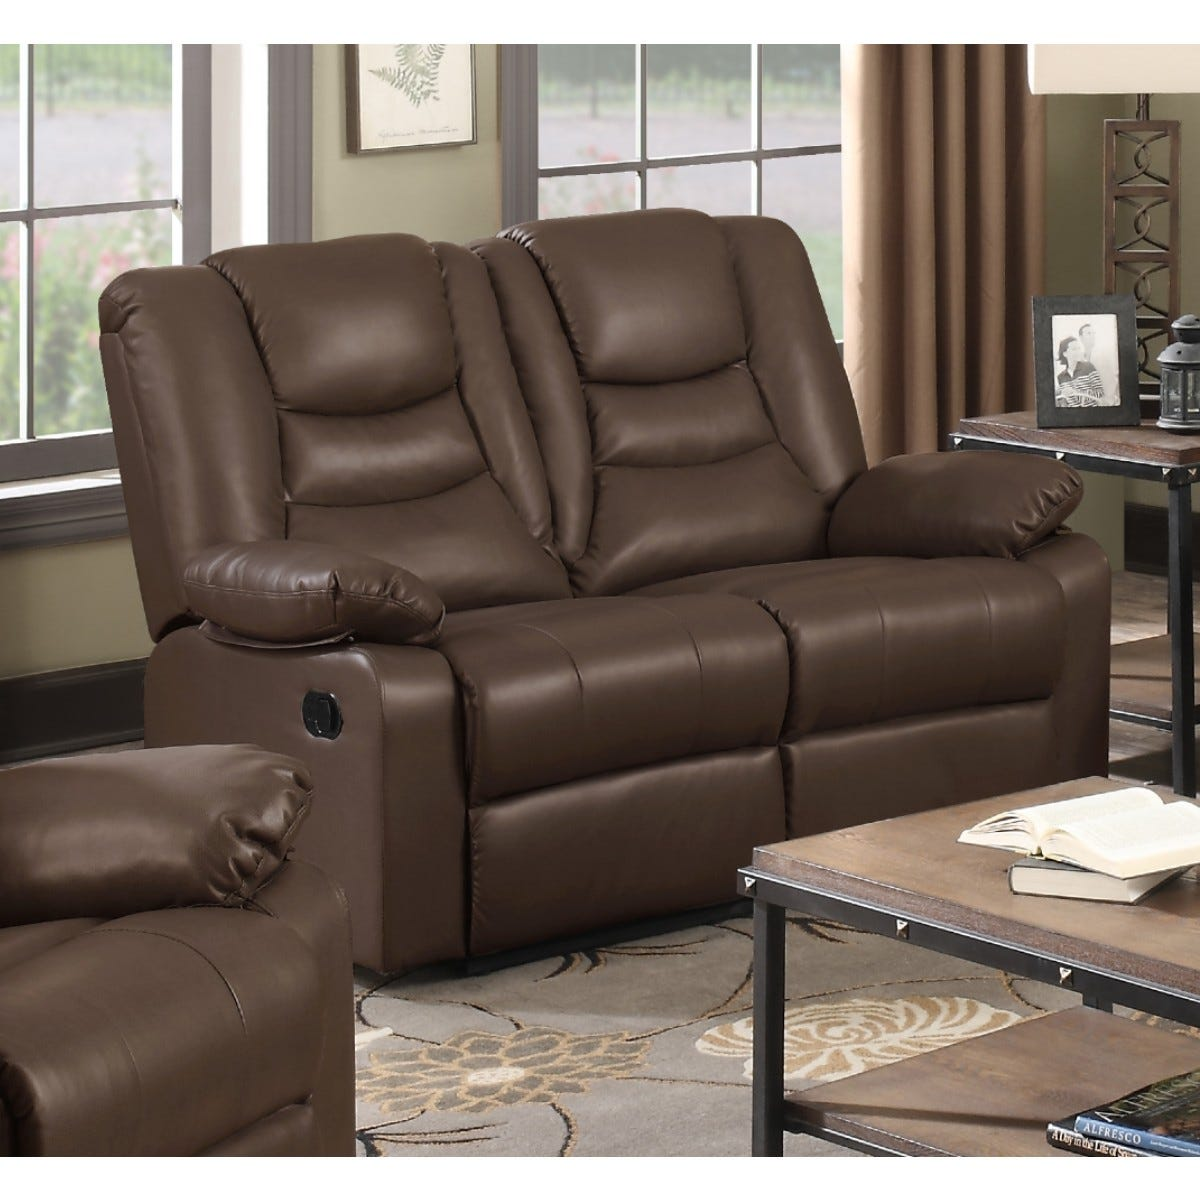 Kington LeatherGel and Faux Leather Reclining 2 Seater Sofa Brown